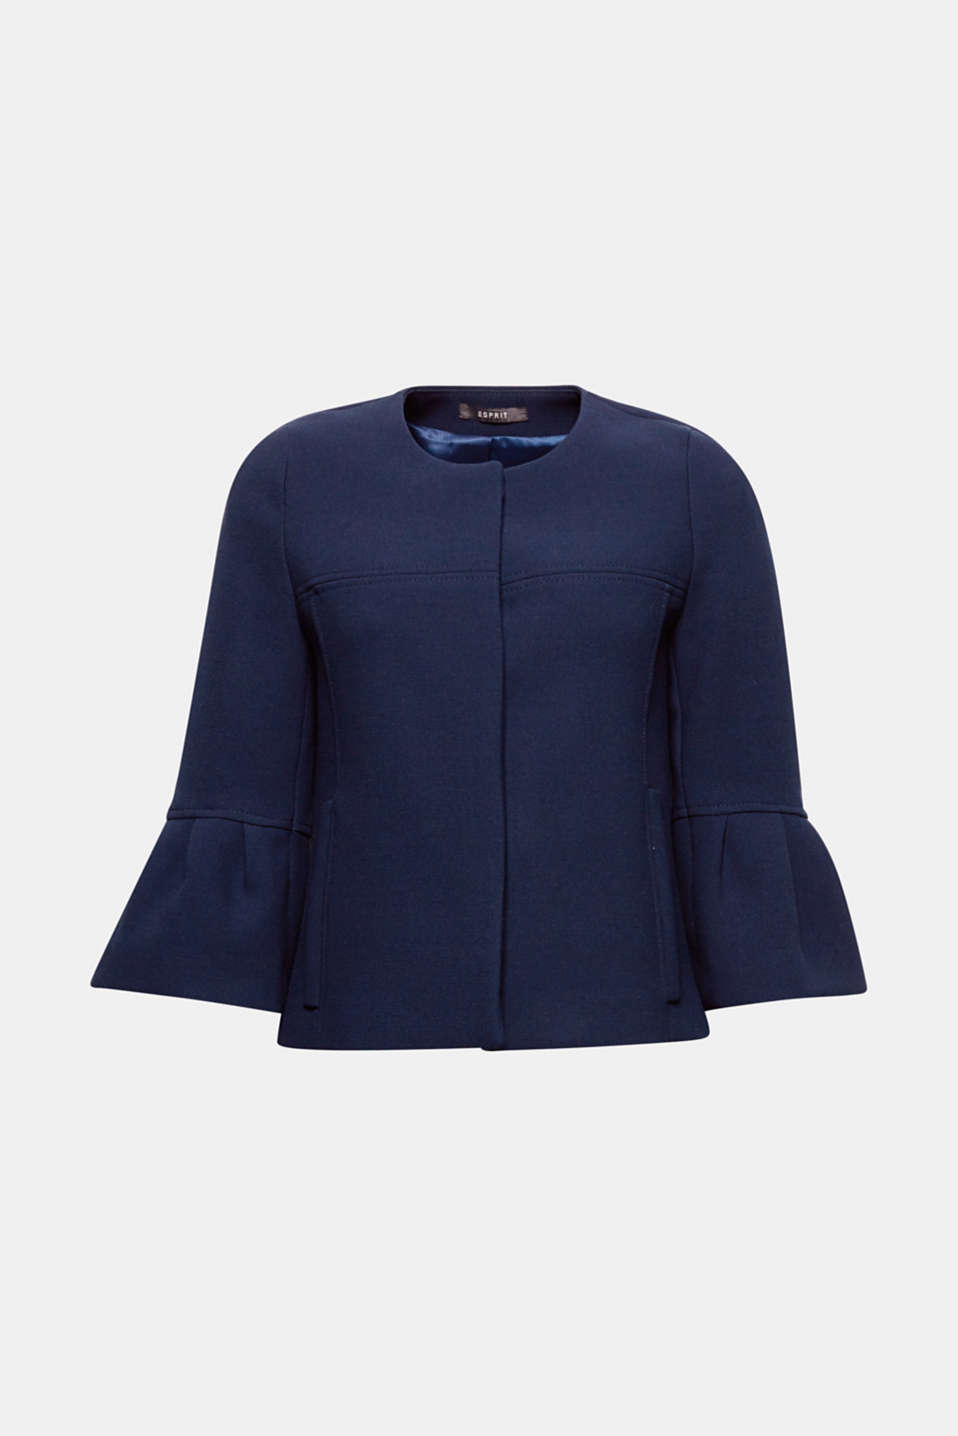 Trend piece: This boxy, short jacket with a fine texture and concealed button placket delights with its cropped flounce sleeves!